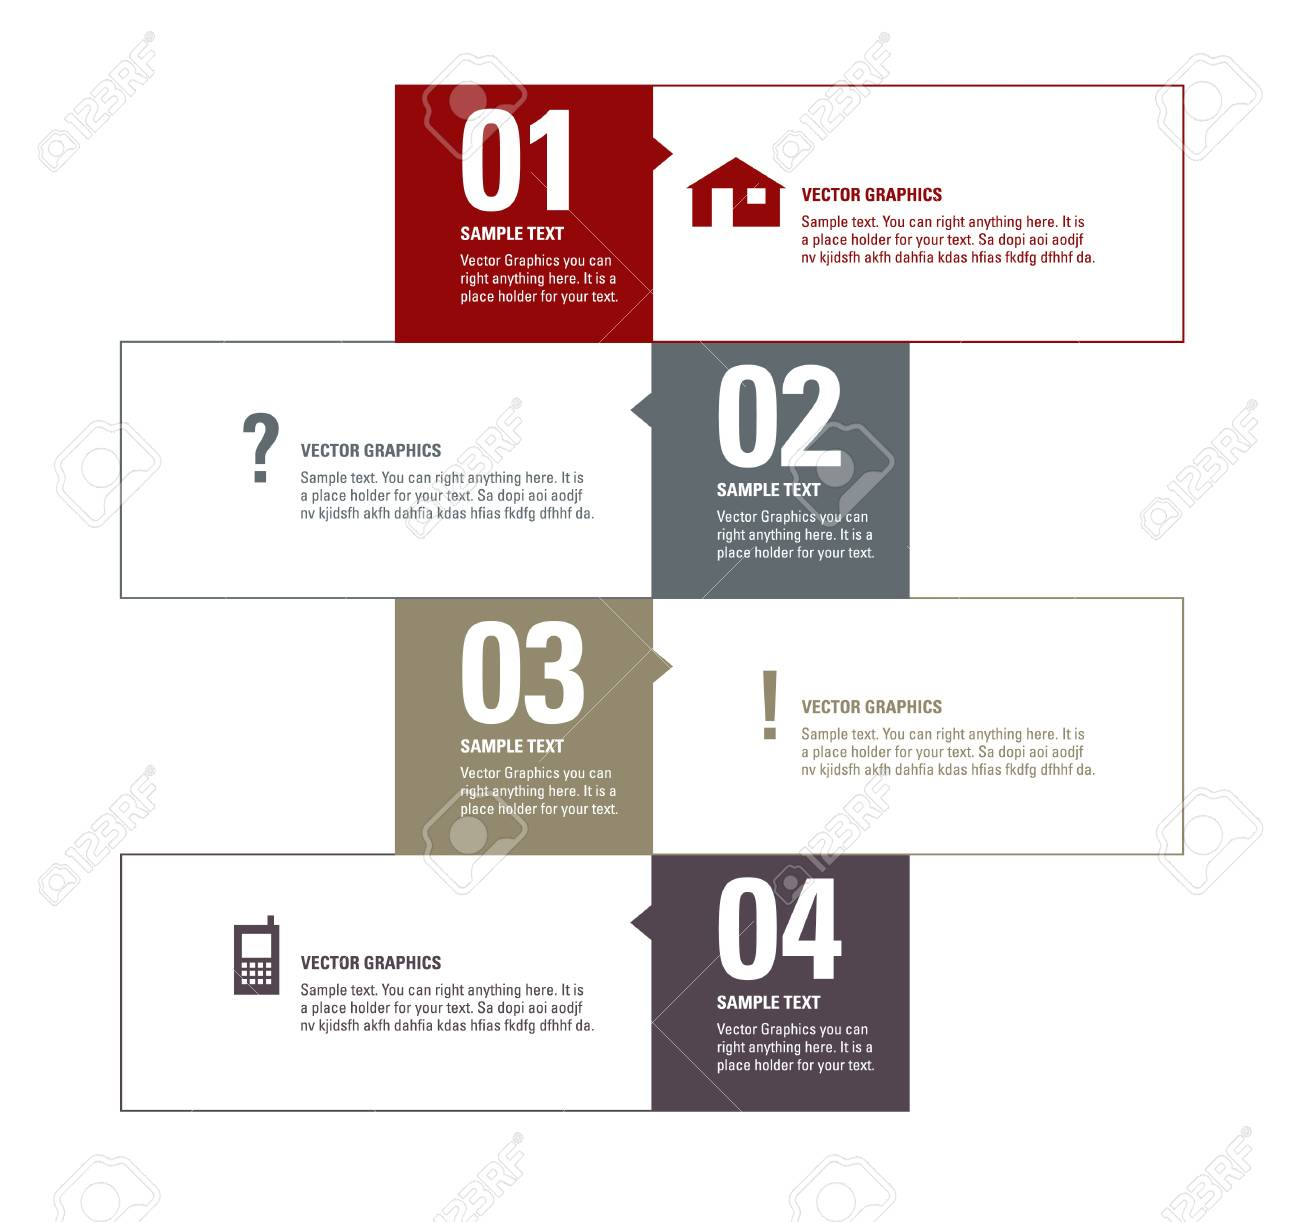 Modern Vector Design Template  Numbered Banners  Graphic or Website Layout Stock Vector - 17946884